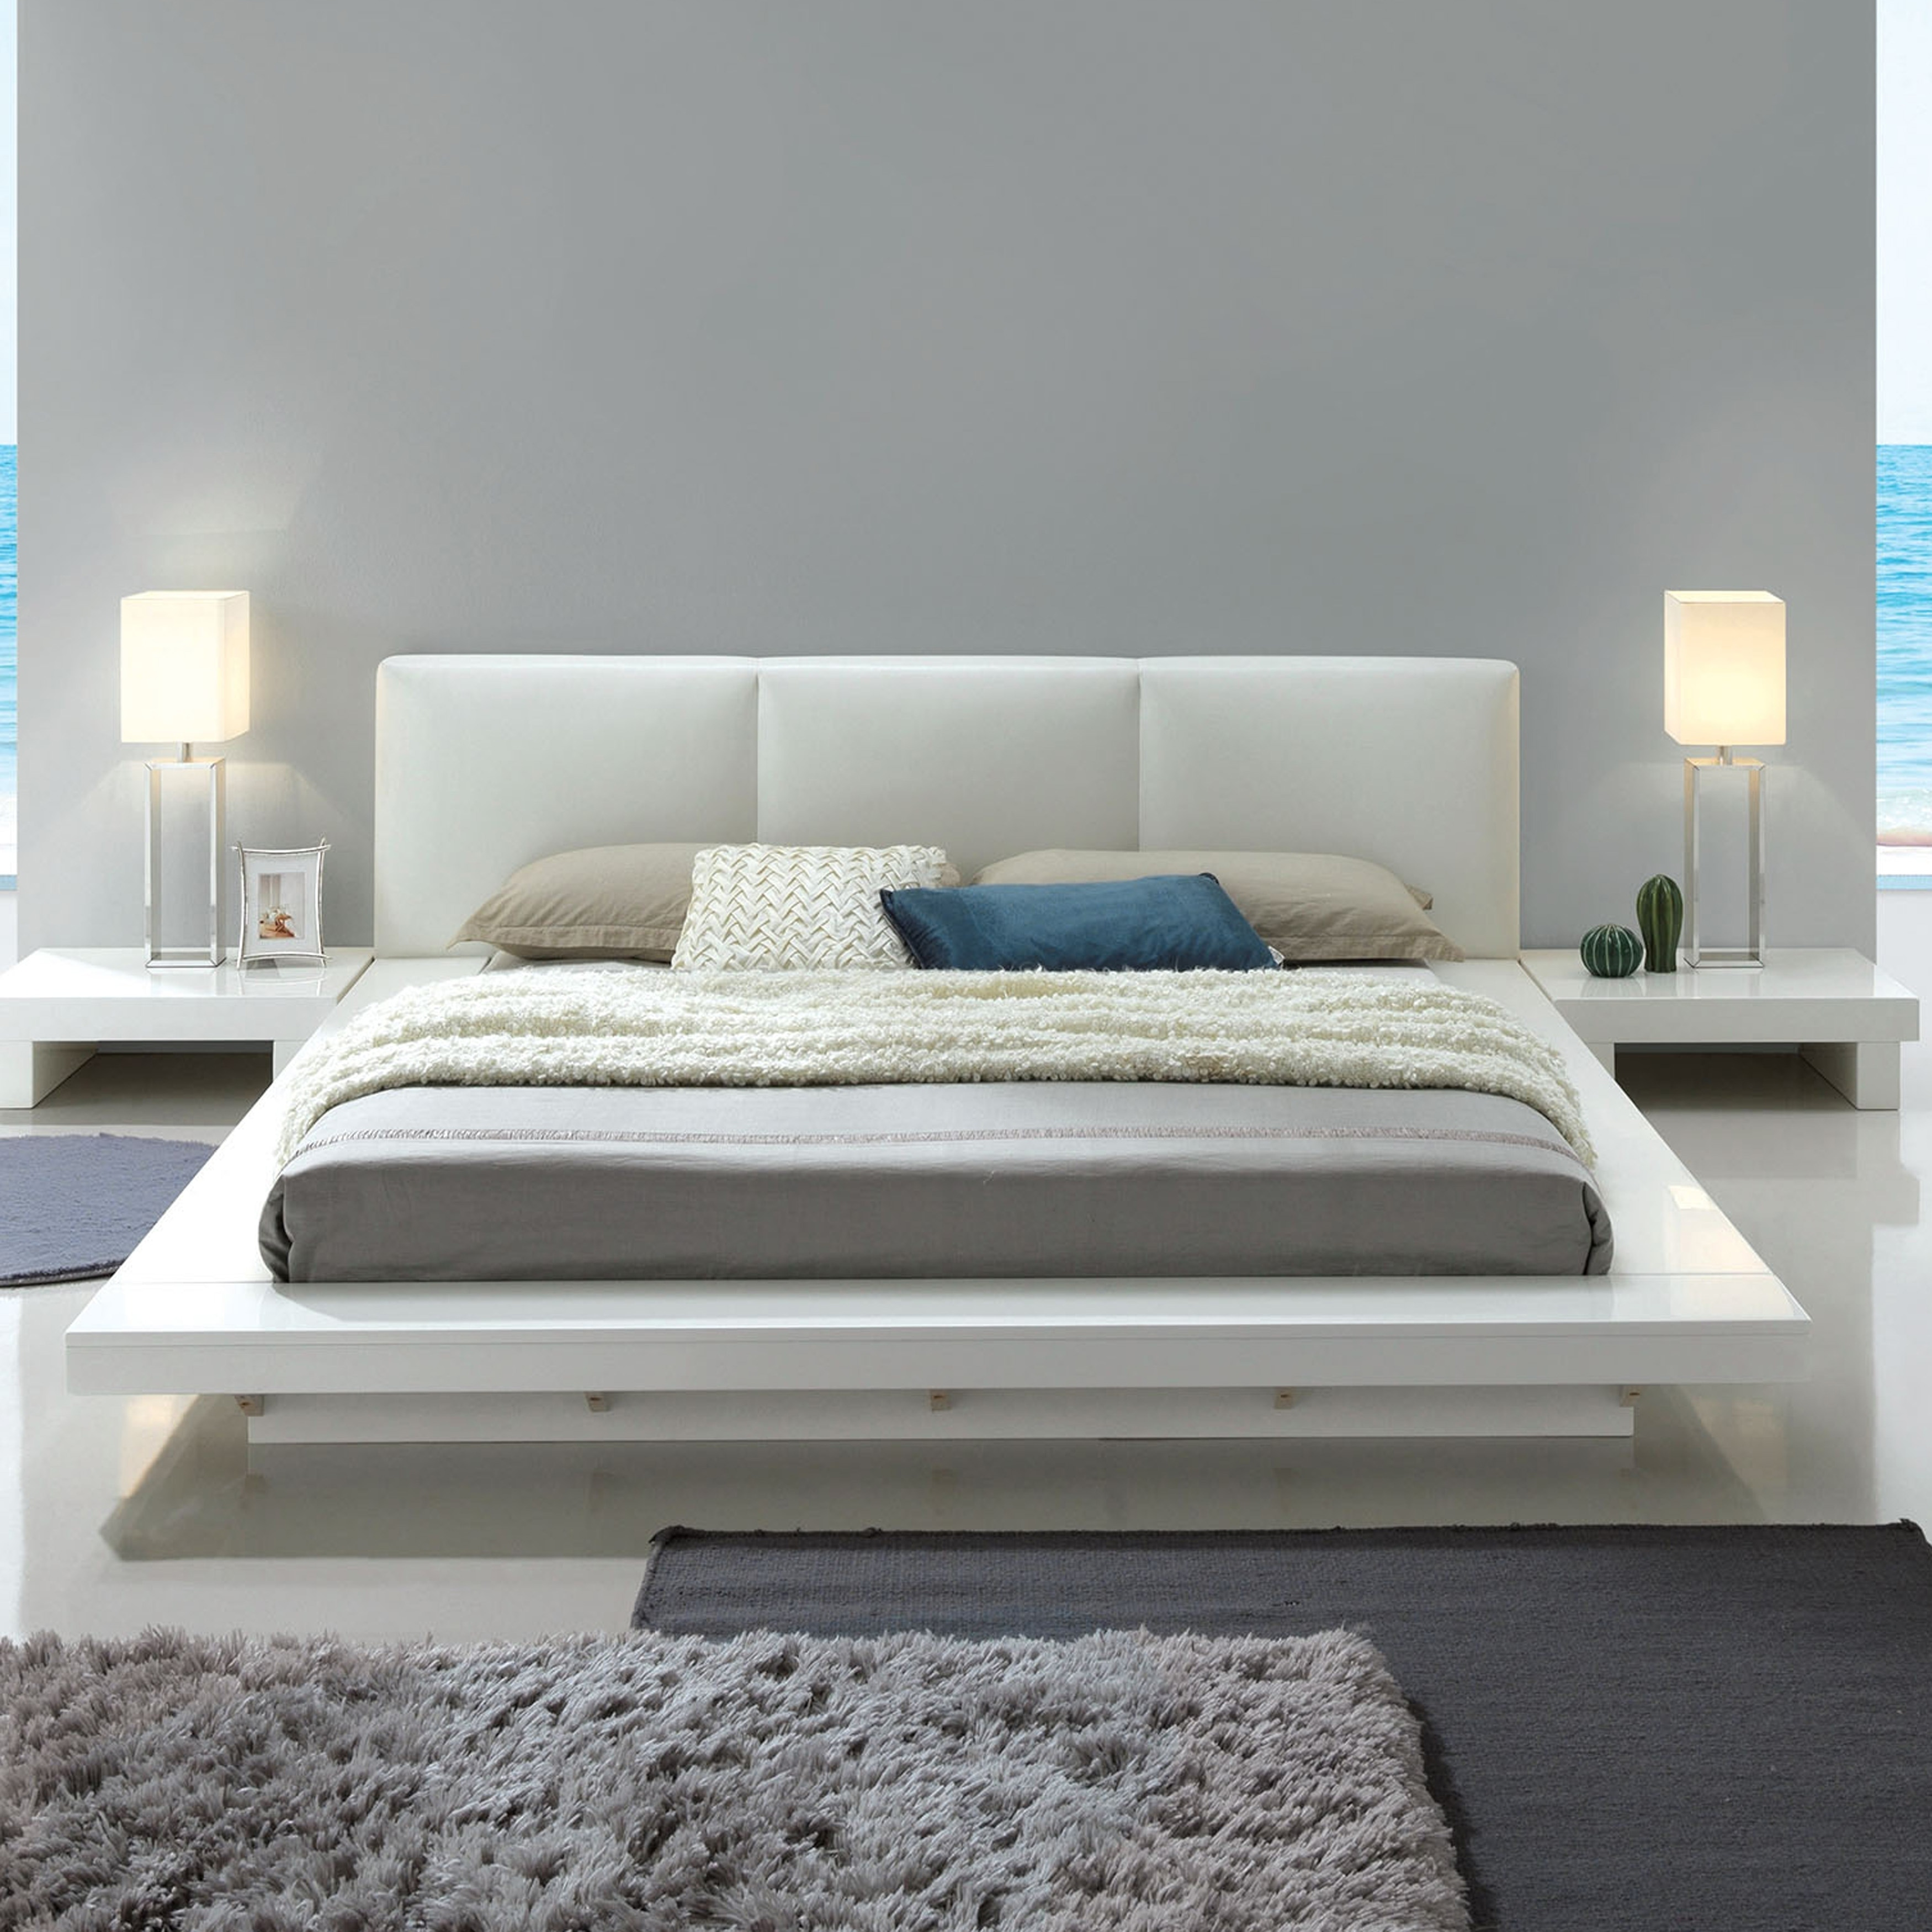 Furniture Of America Phoenix Low Profile Upholstered Headboard Bed Free Shipping Today 25324454